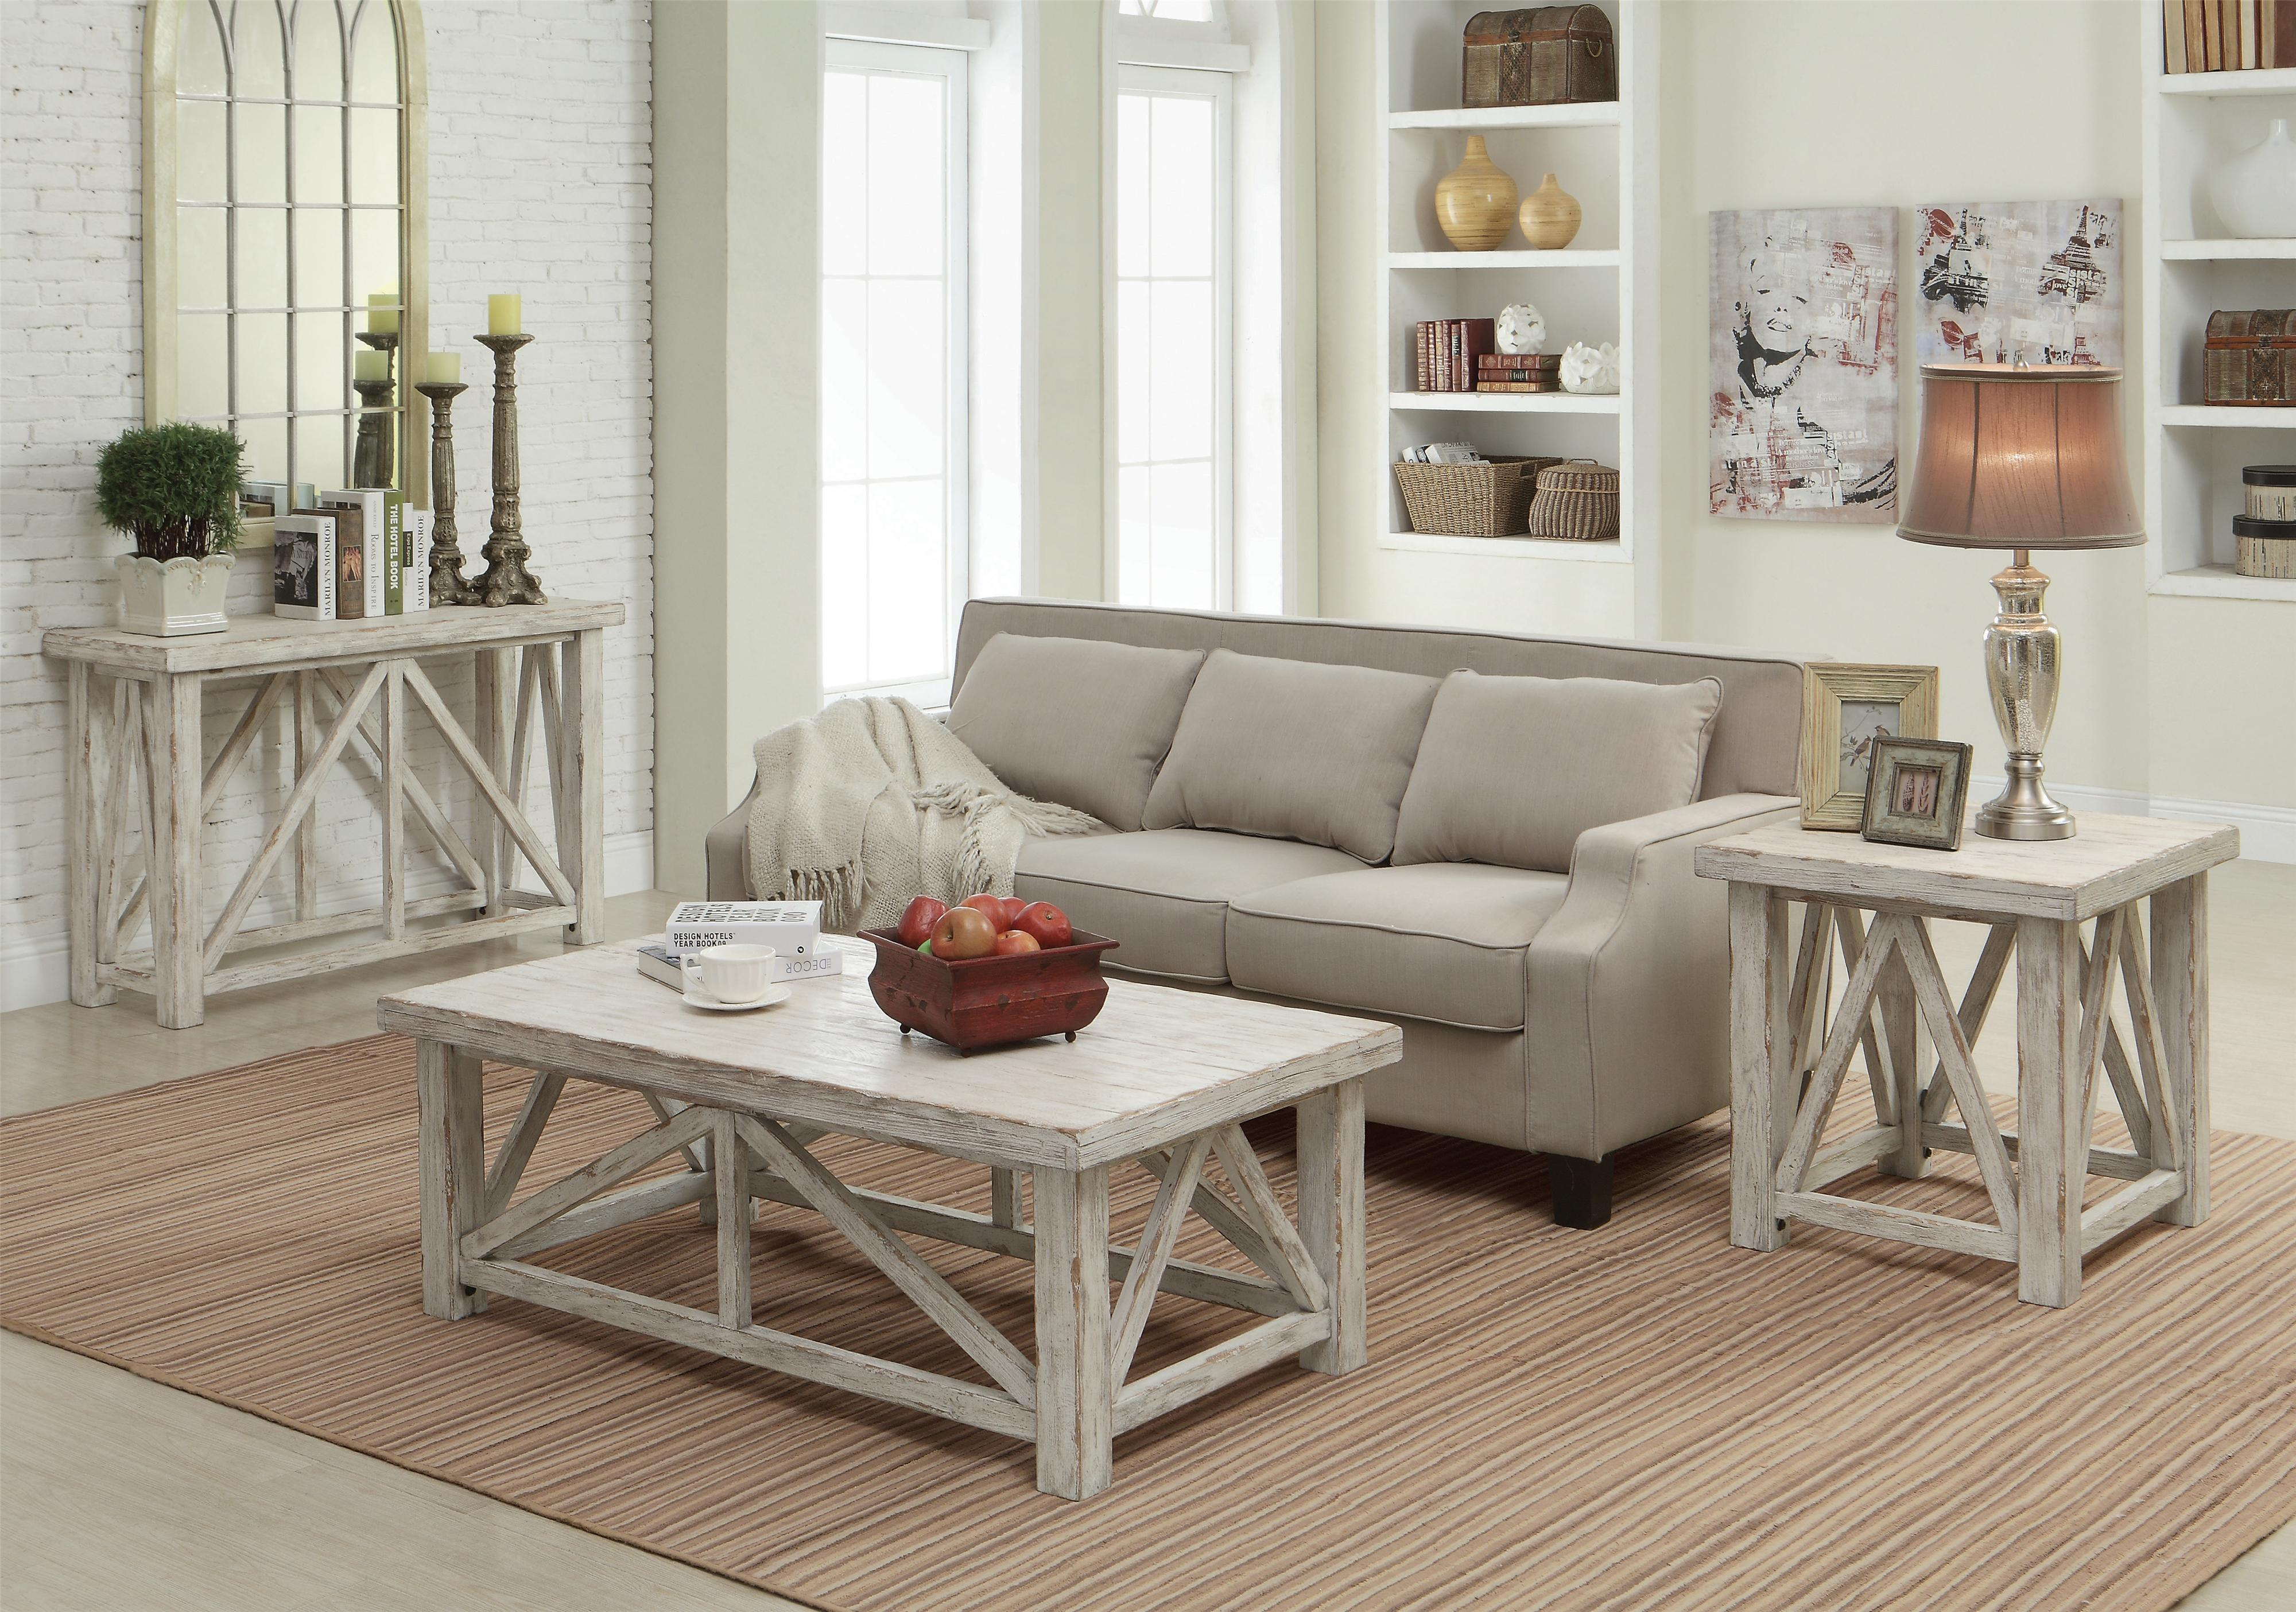 Riverside Furniture Aberdeen Sofa Table With Block Feet Jacksonville Furniture Mart Sofa Table